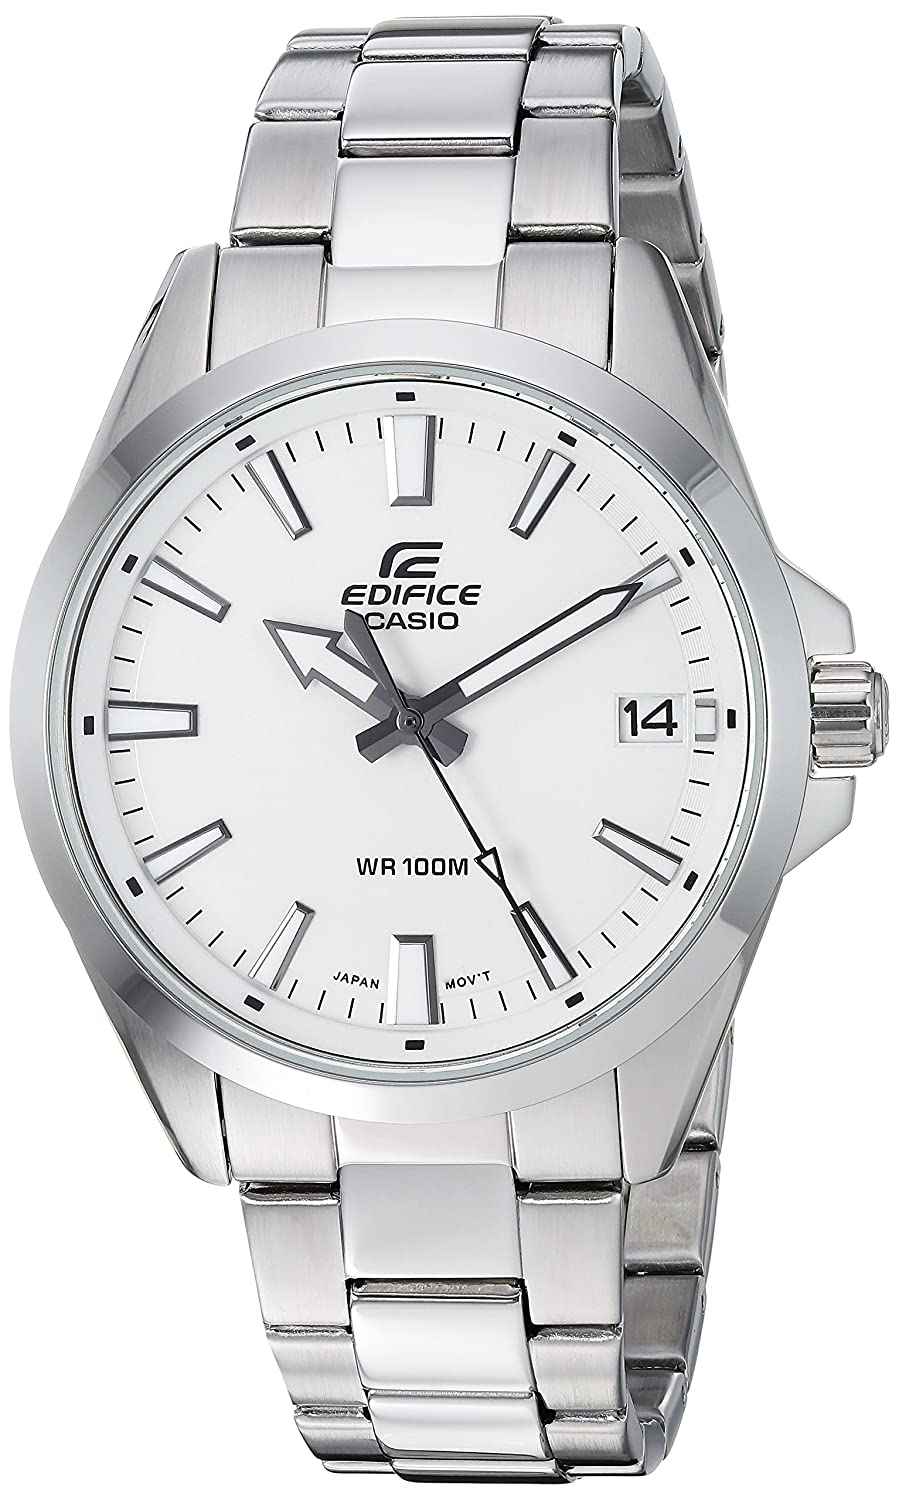 Casio Men s Edifice Quartz Watch with Stainless-Steel Strap, Silver, 19.7 Model EFV-100D-7AVCR